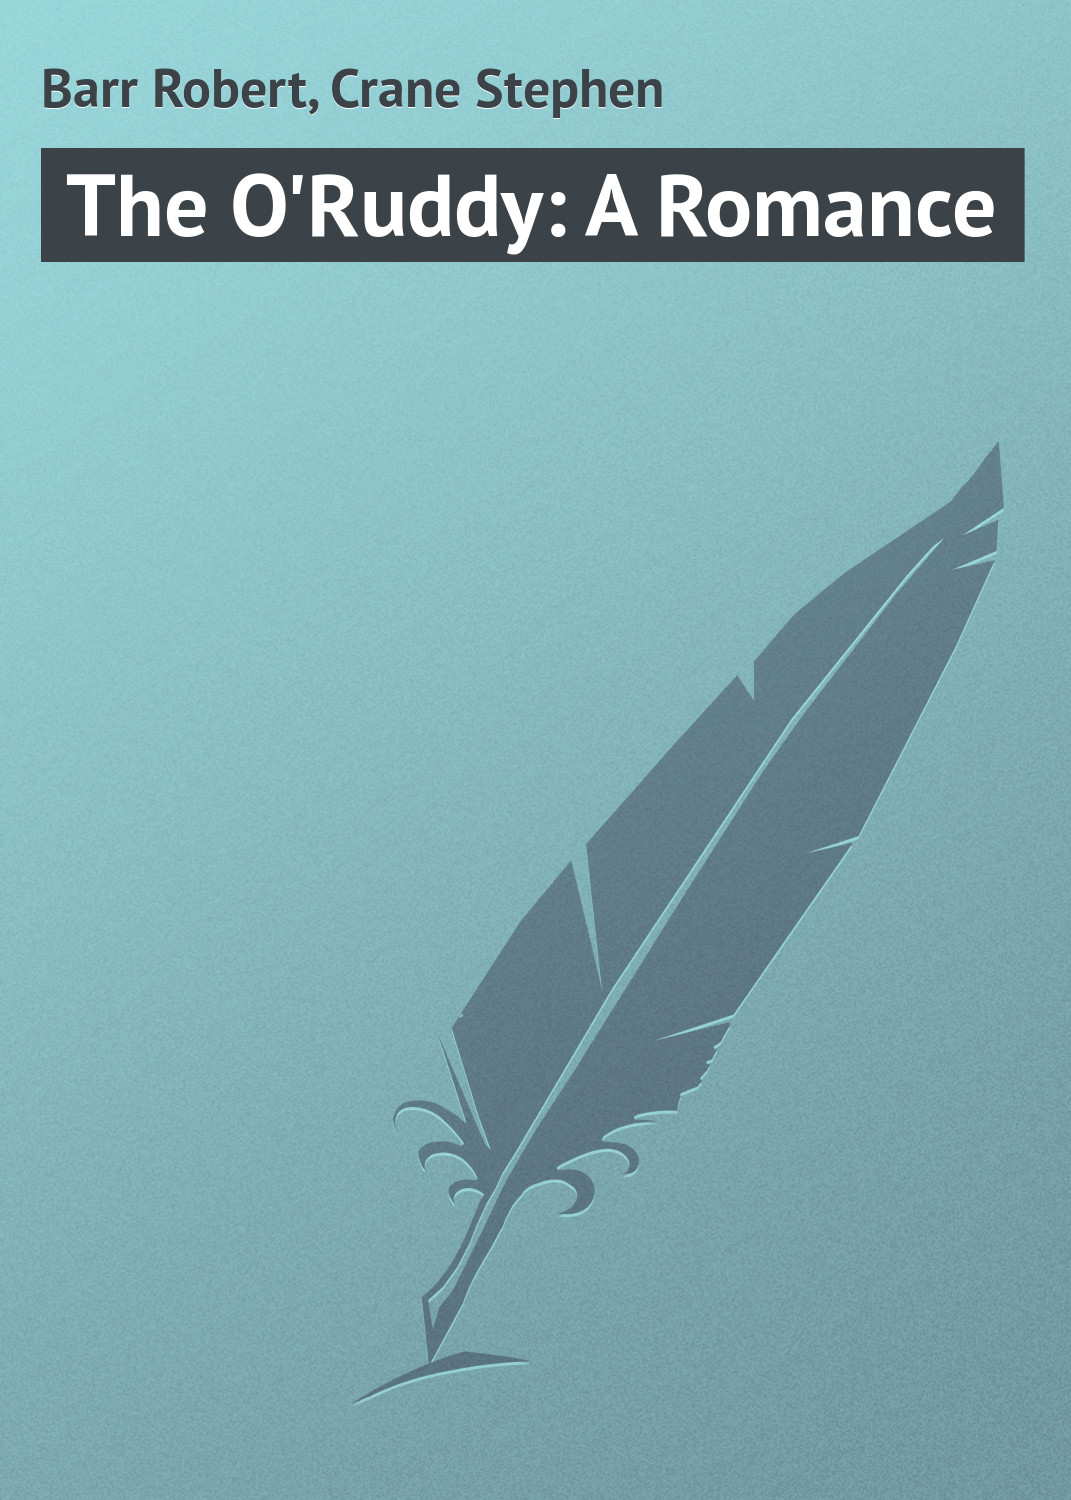 Barr Robert The O'Ruddy: A Romance